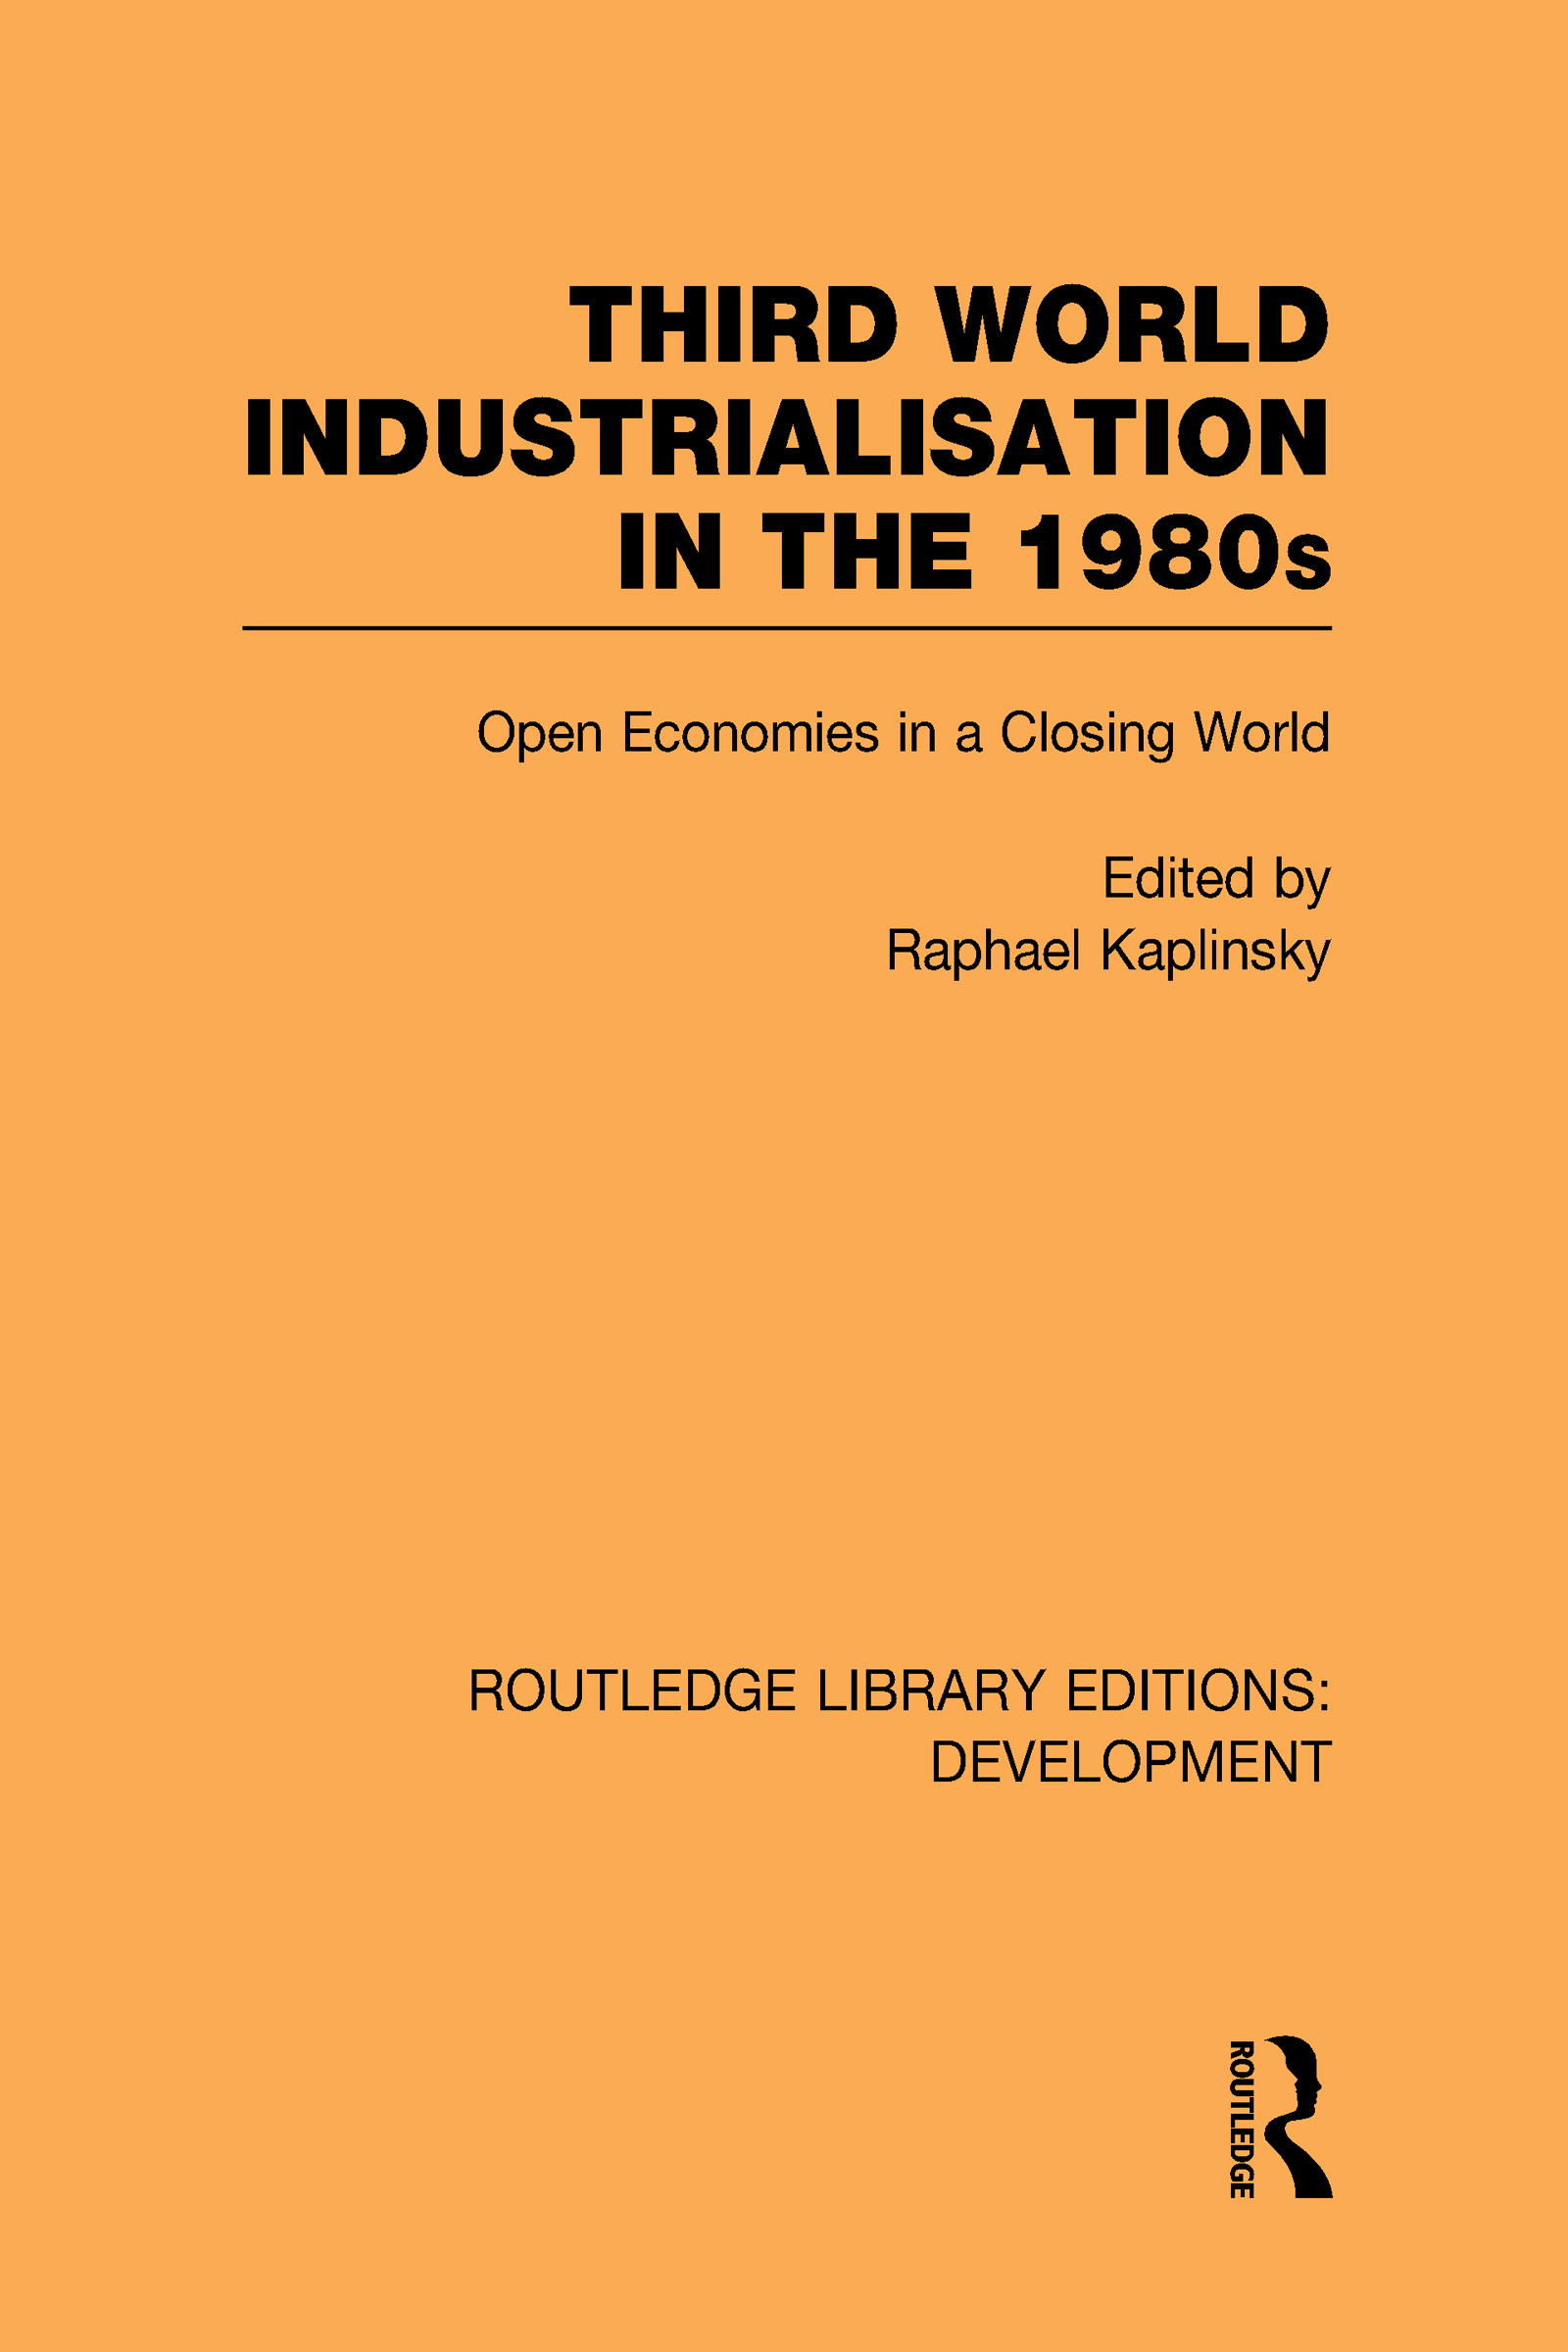 Third World Industrialization in the 1980s: Open Economies in a Closing World book cover